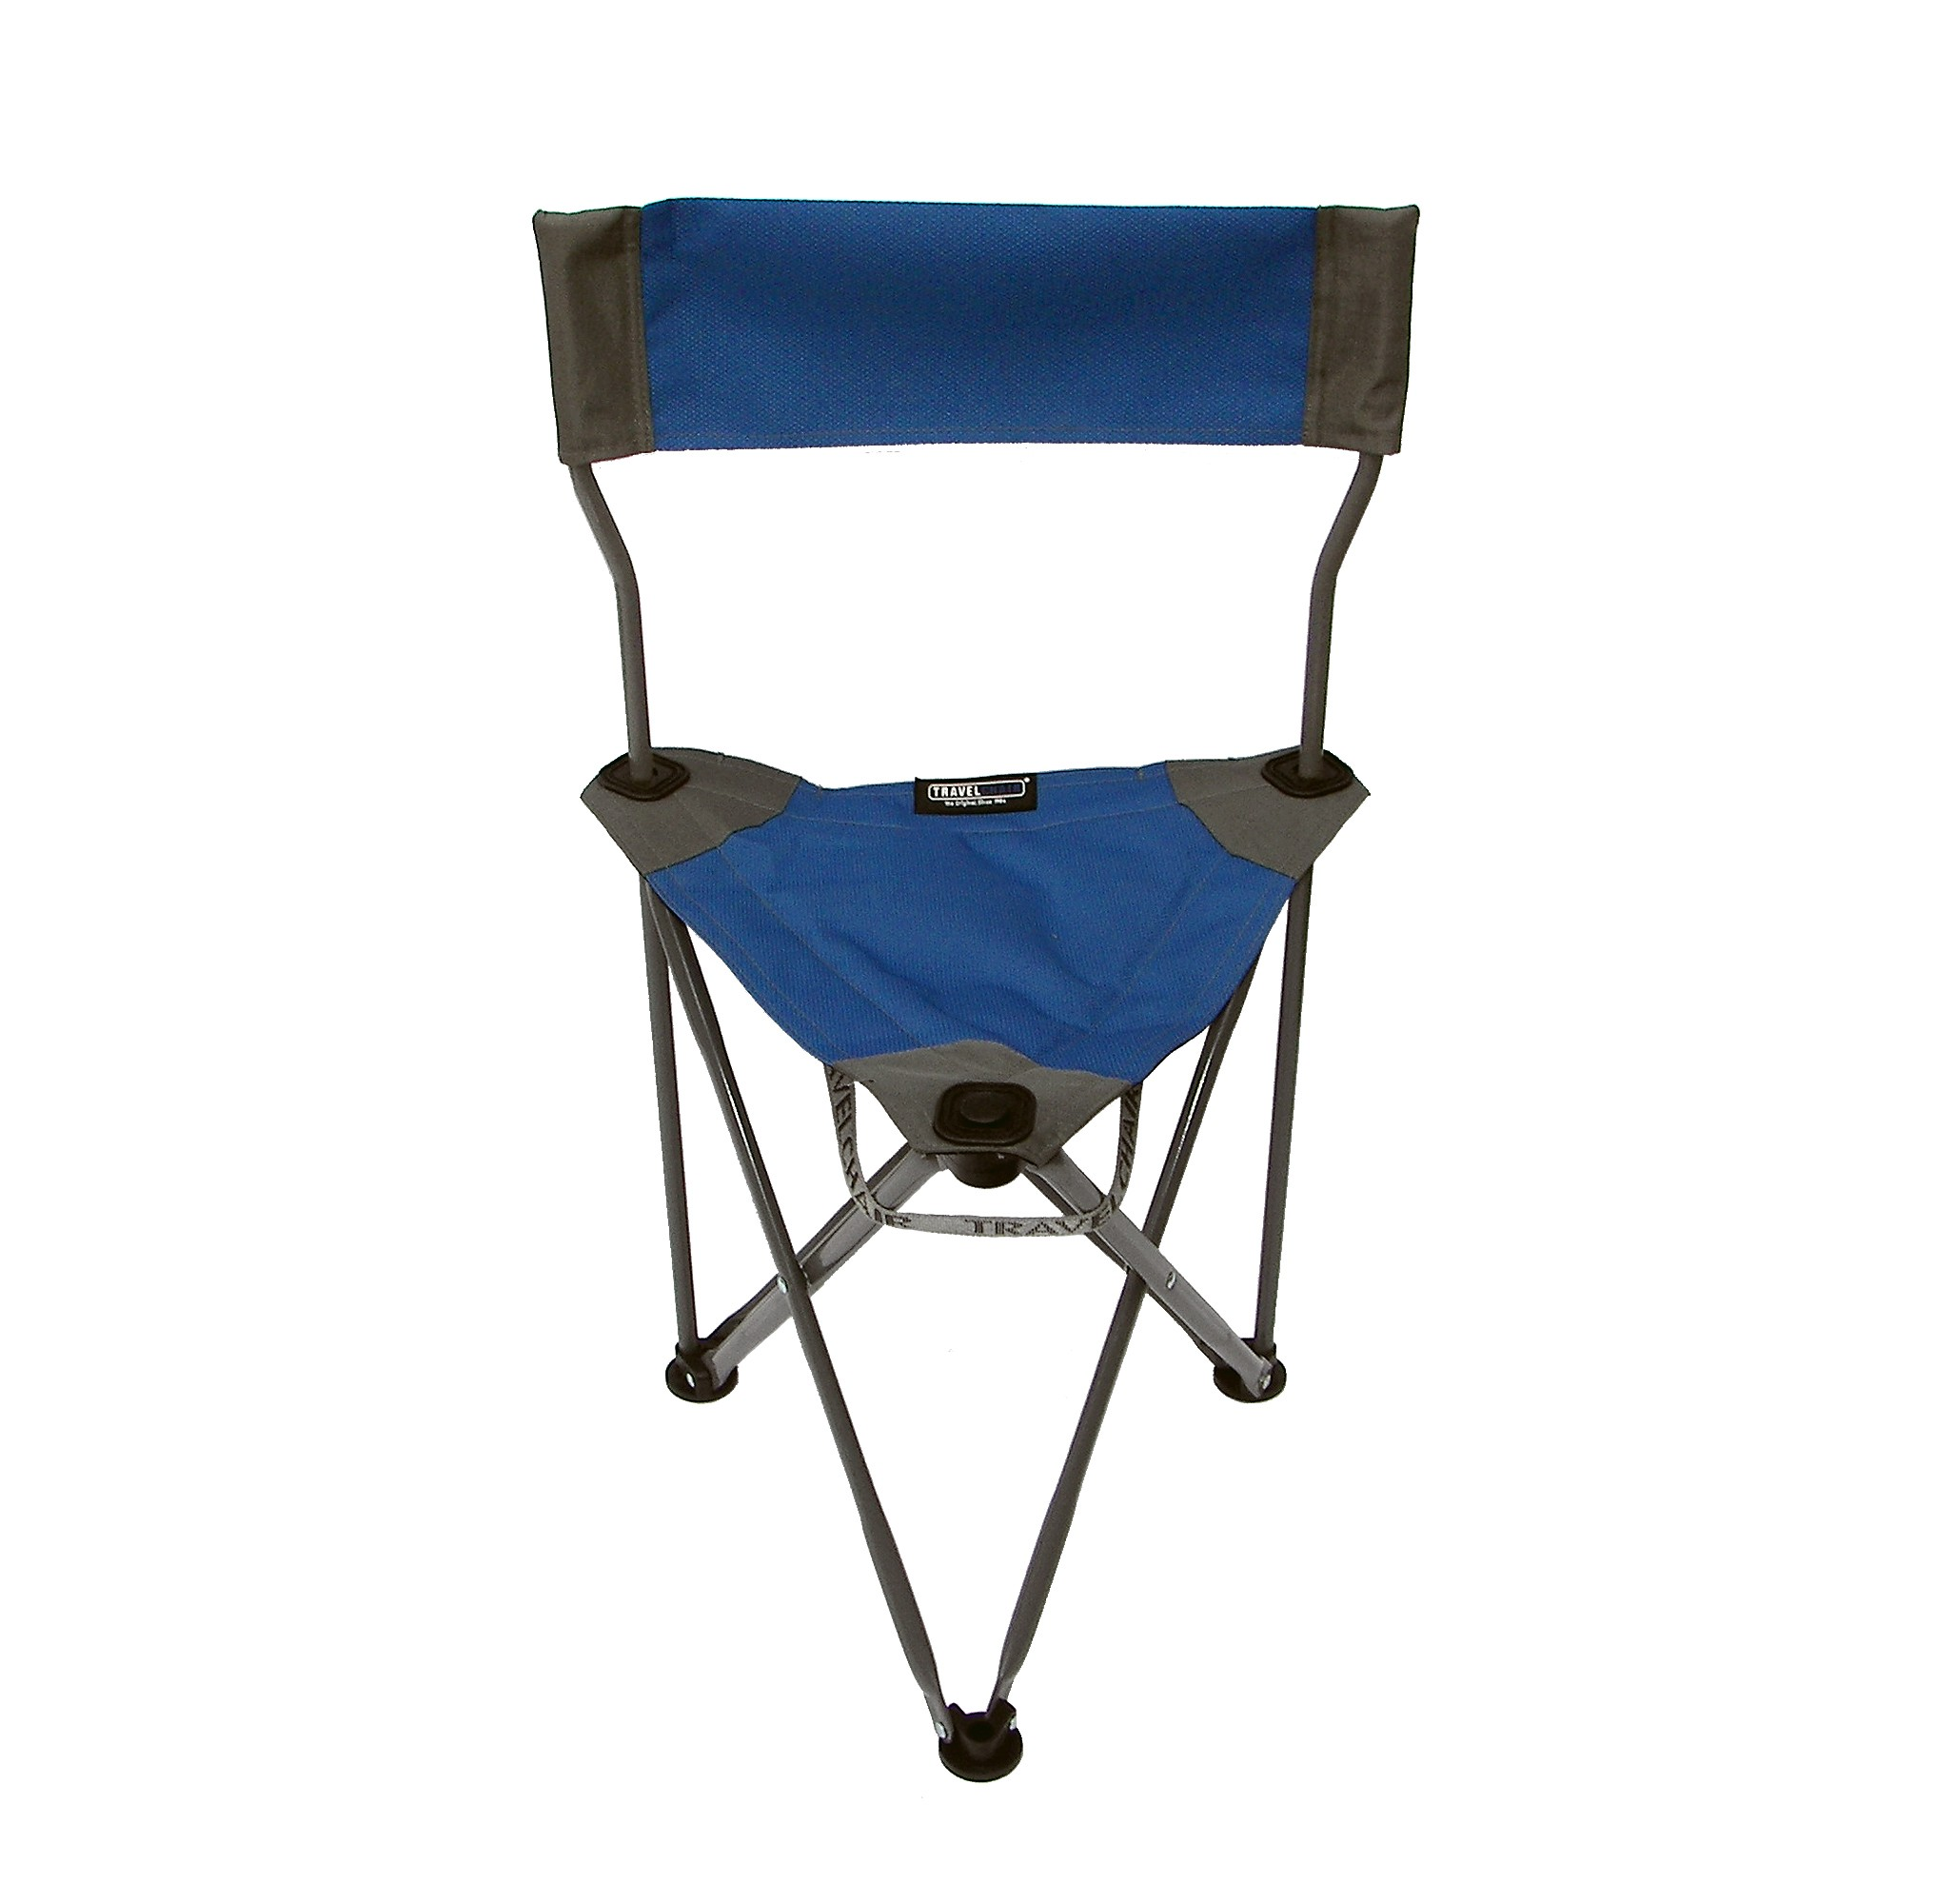 compact travel beach chairs chair with twin bed sleeper travelchair ultimate slacker 2 1489v2 portable camping stool